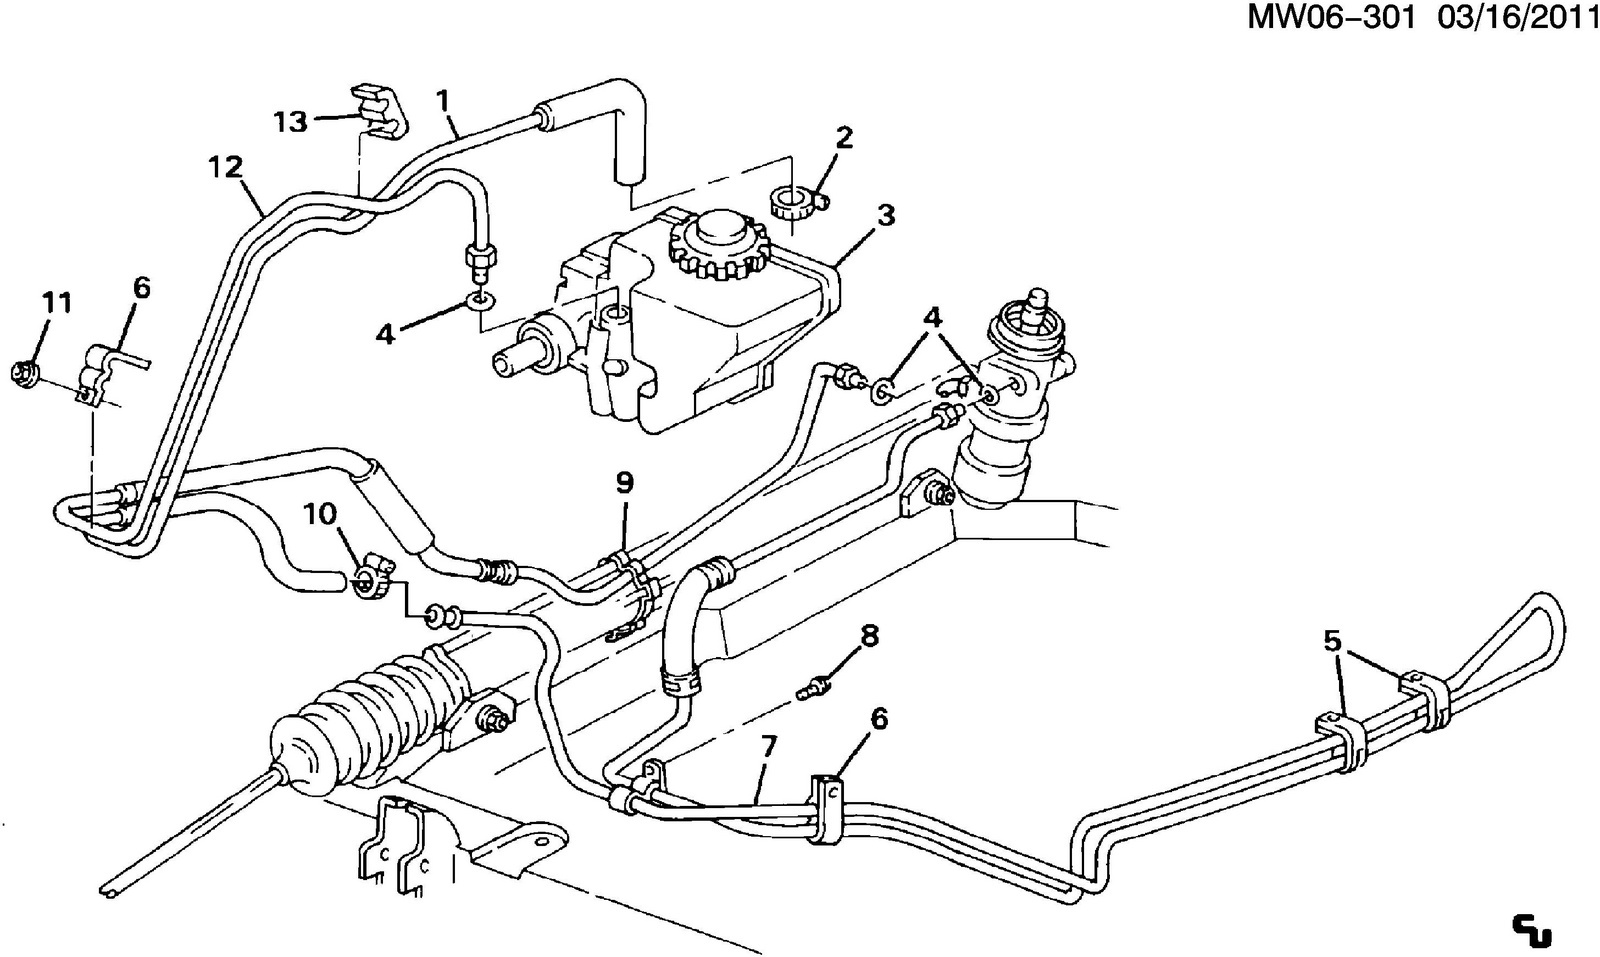 1996 Pontiac Grand Prix Engine Diagram Simple Guide About Wiring 2001 Gt Fuse Box Questions 1993 Power Steering Pump